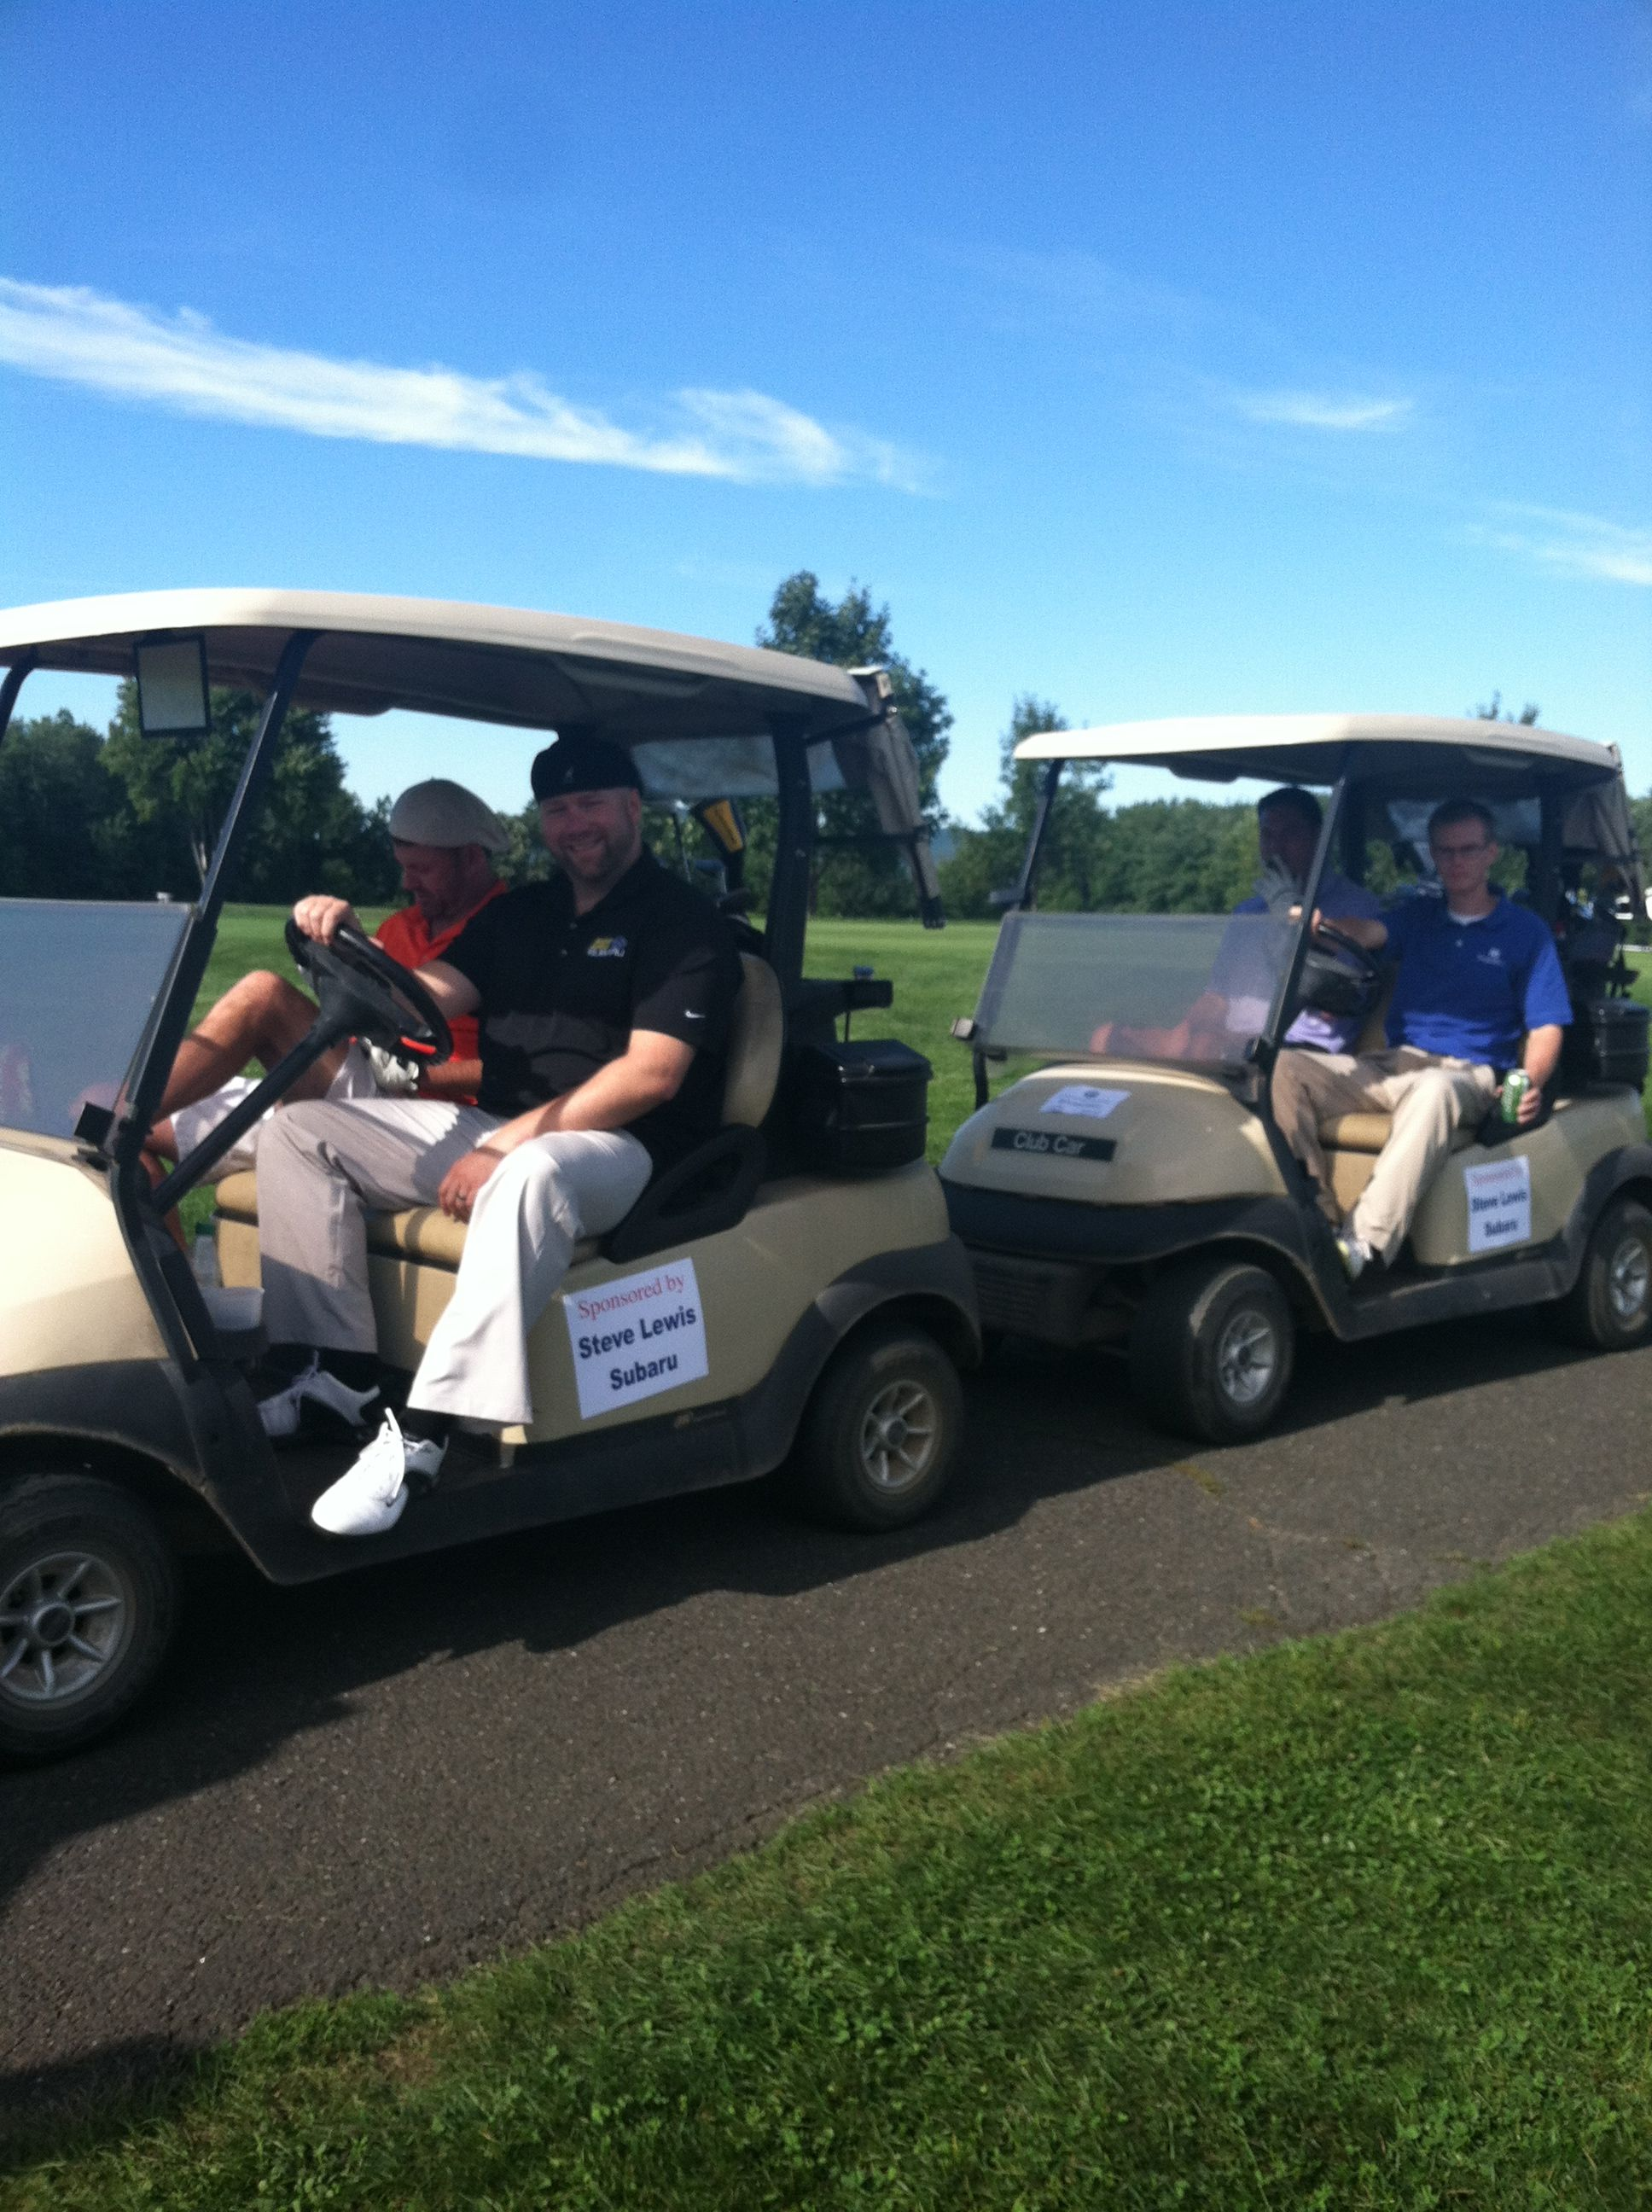 Winners of the Leprechaun Plunge Golf Tournament! | Oh The Places We on maleficent golf cart, unicorn golf cart, ghostbusters golf cart, predator golf cart, gnome golf cart,